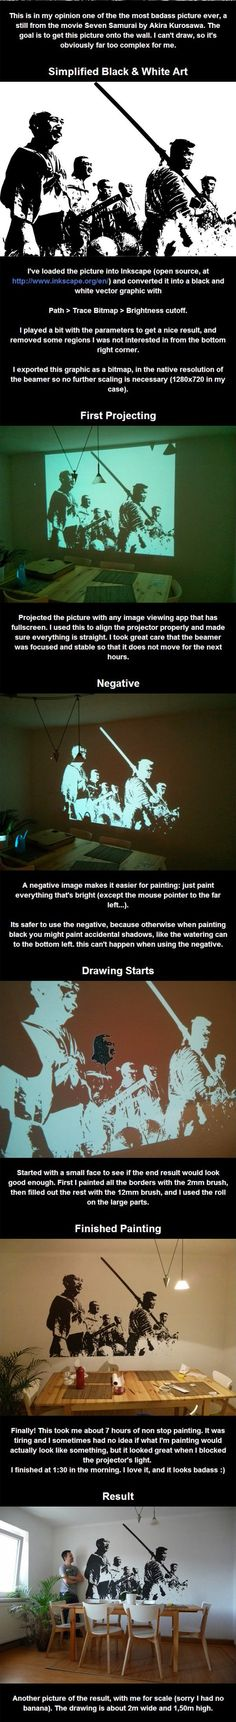 How to project an image on a wall to paint a mural (click-through for tutorial on making the projected picture itself)